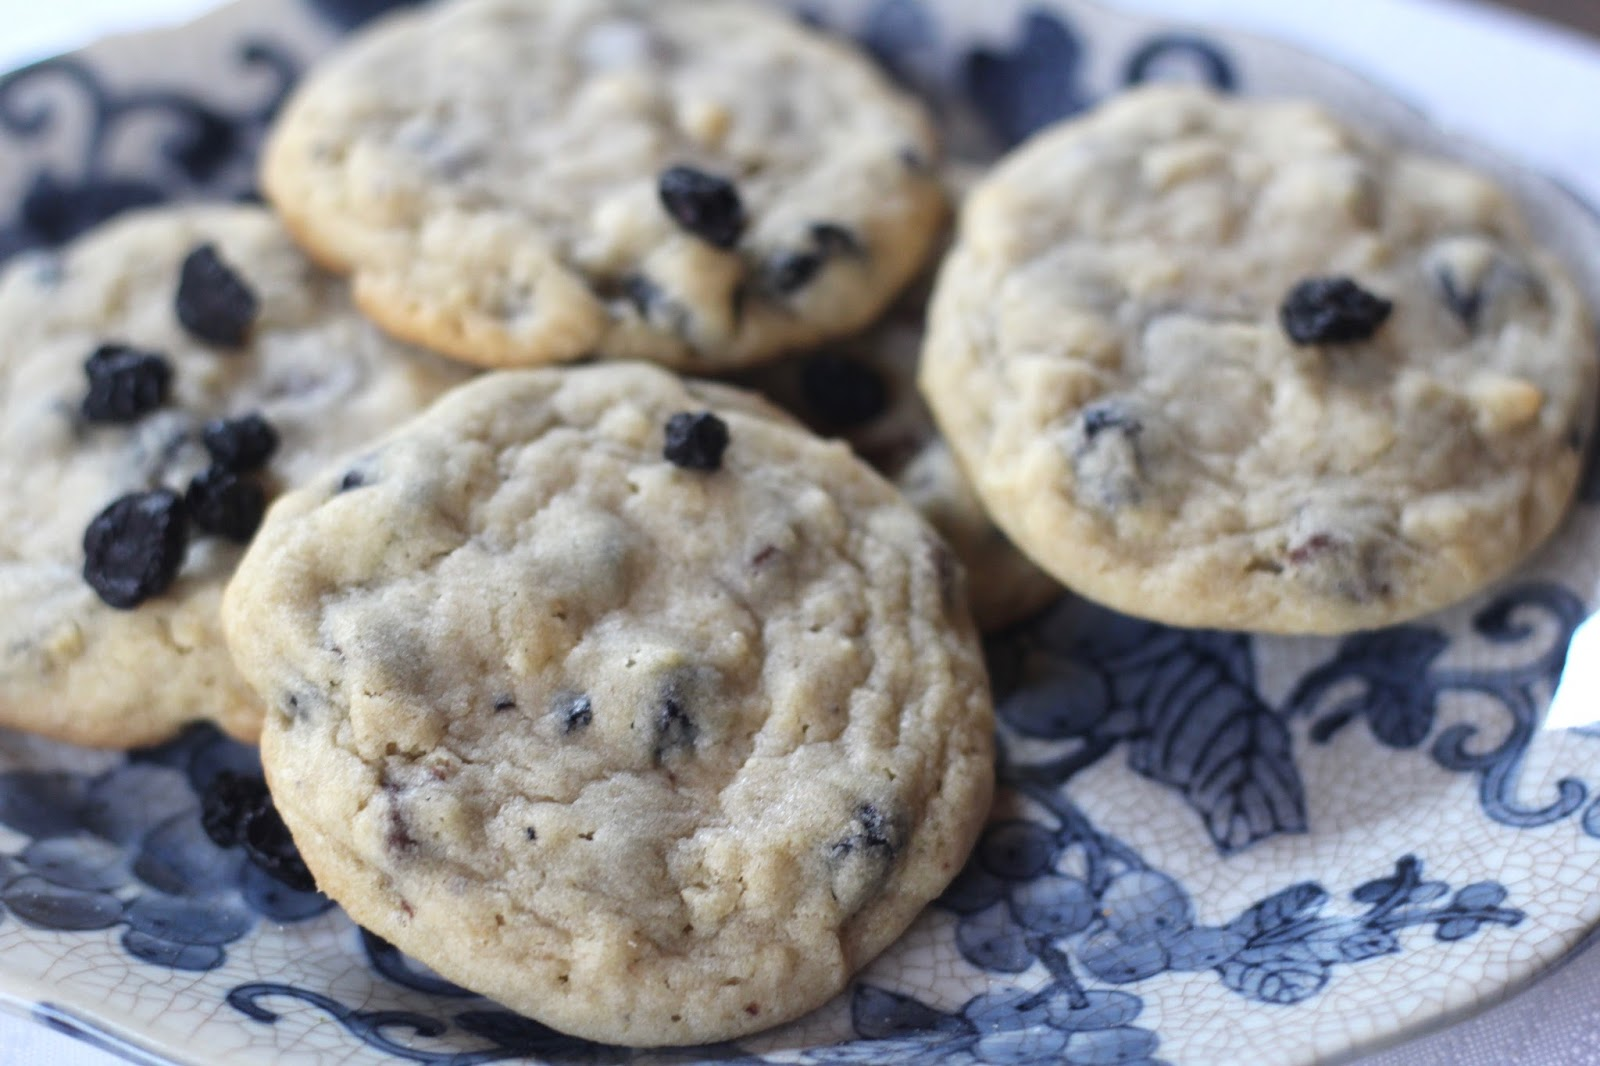 Blueberry-Chocolate-Chip-Potato-Chip-Cookies-4.jpg